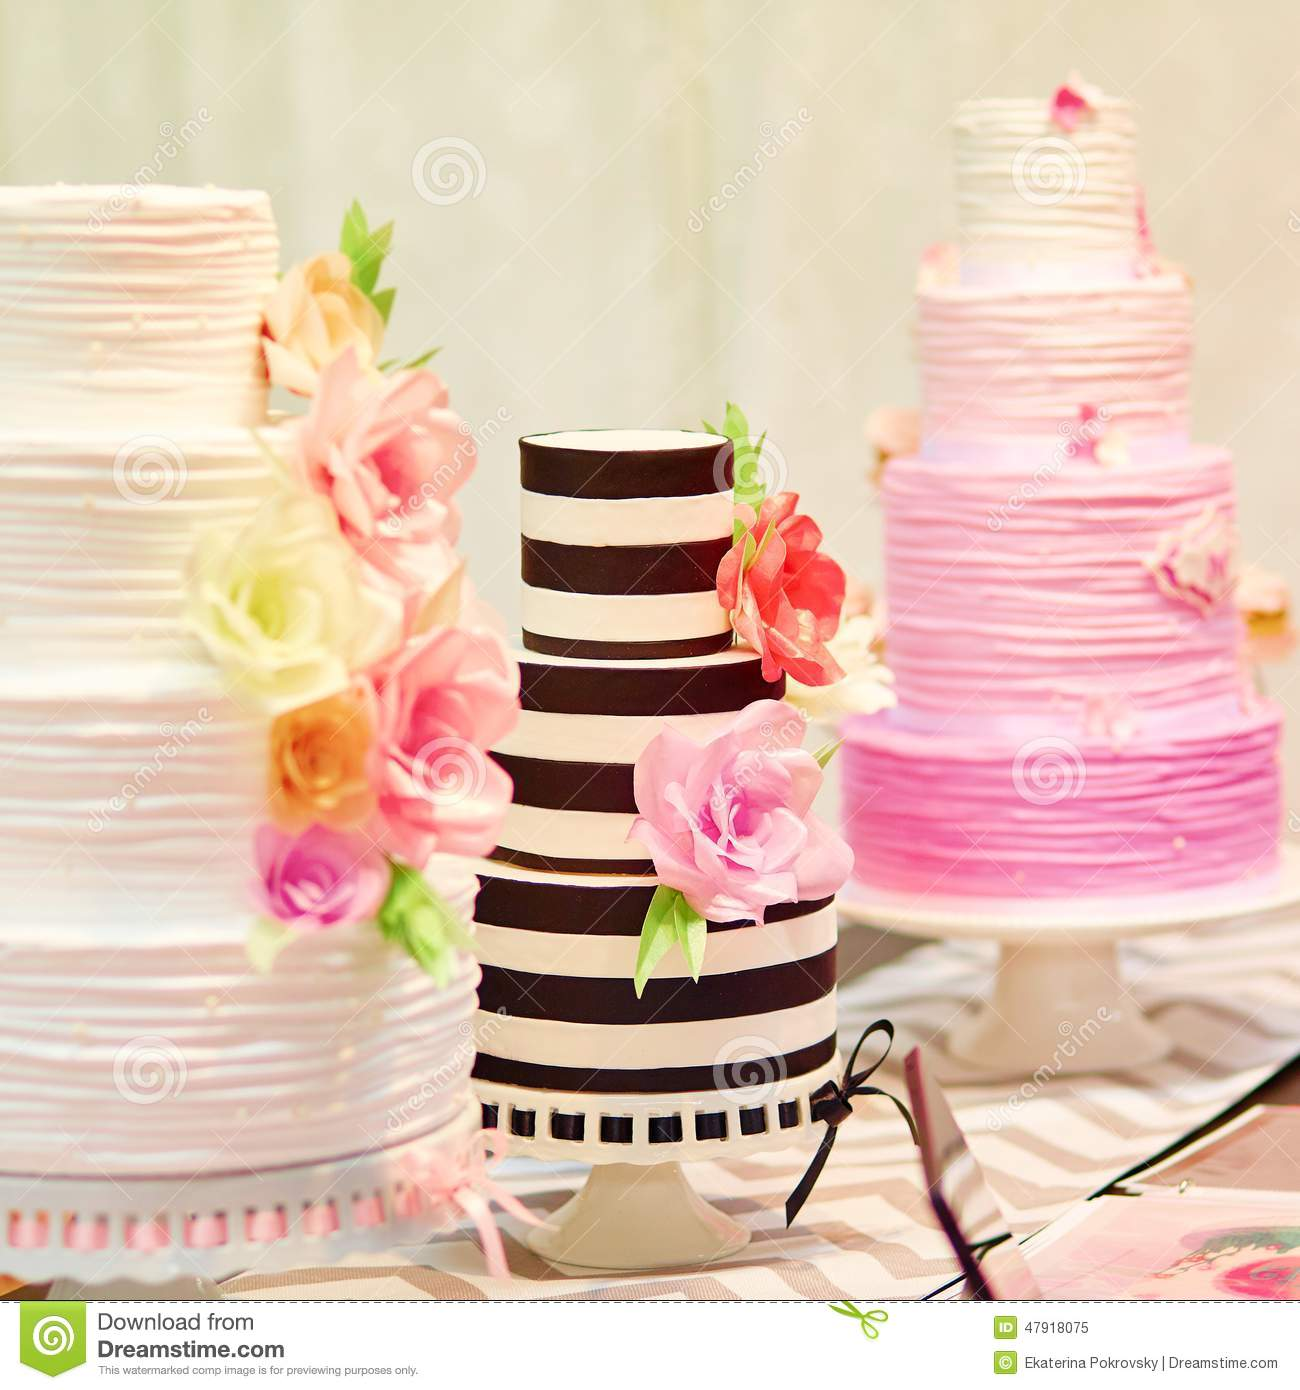 Wedding Dessert Table With Cakes And White Flowers Stock Photo ...